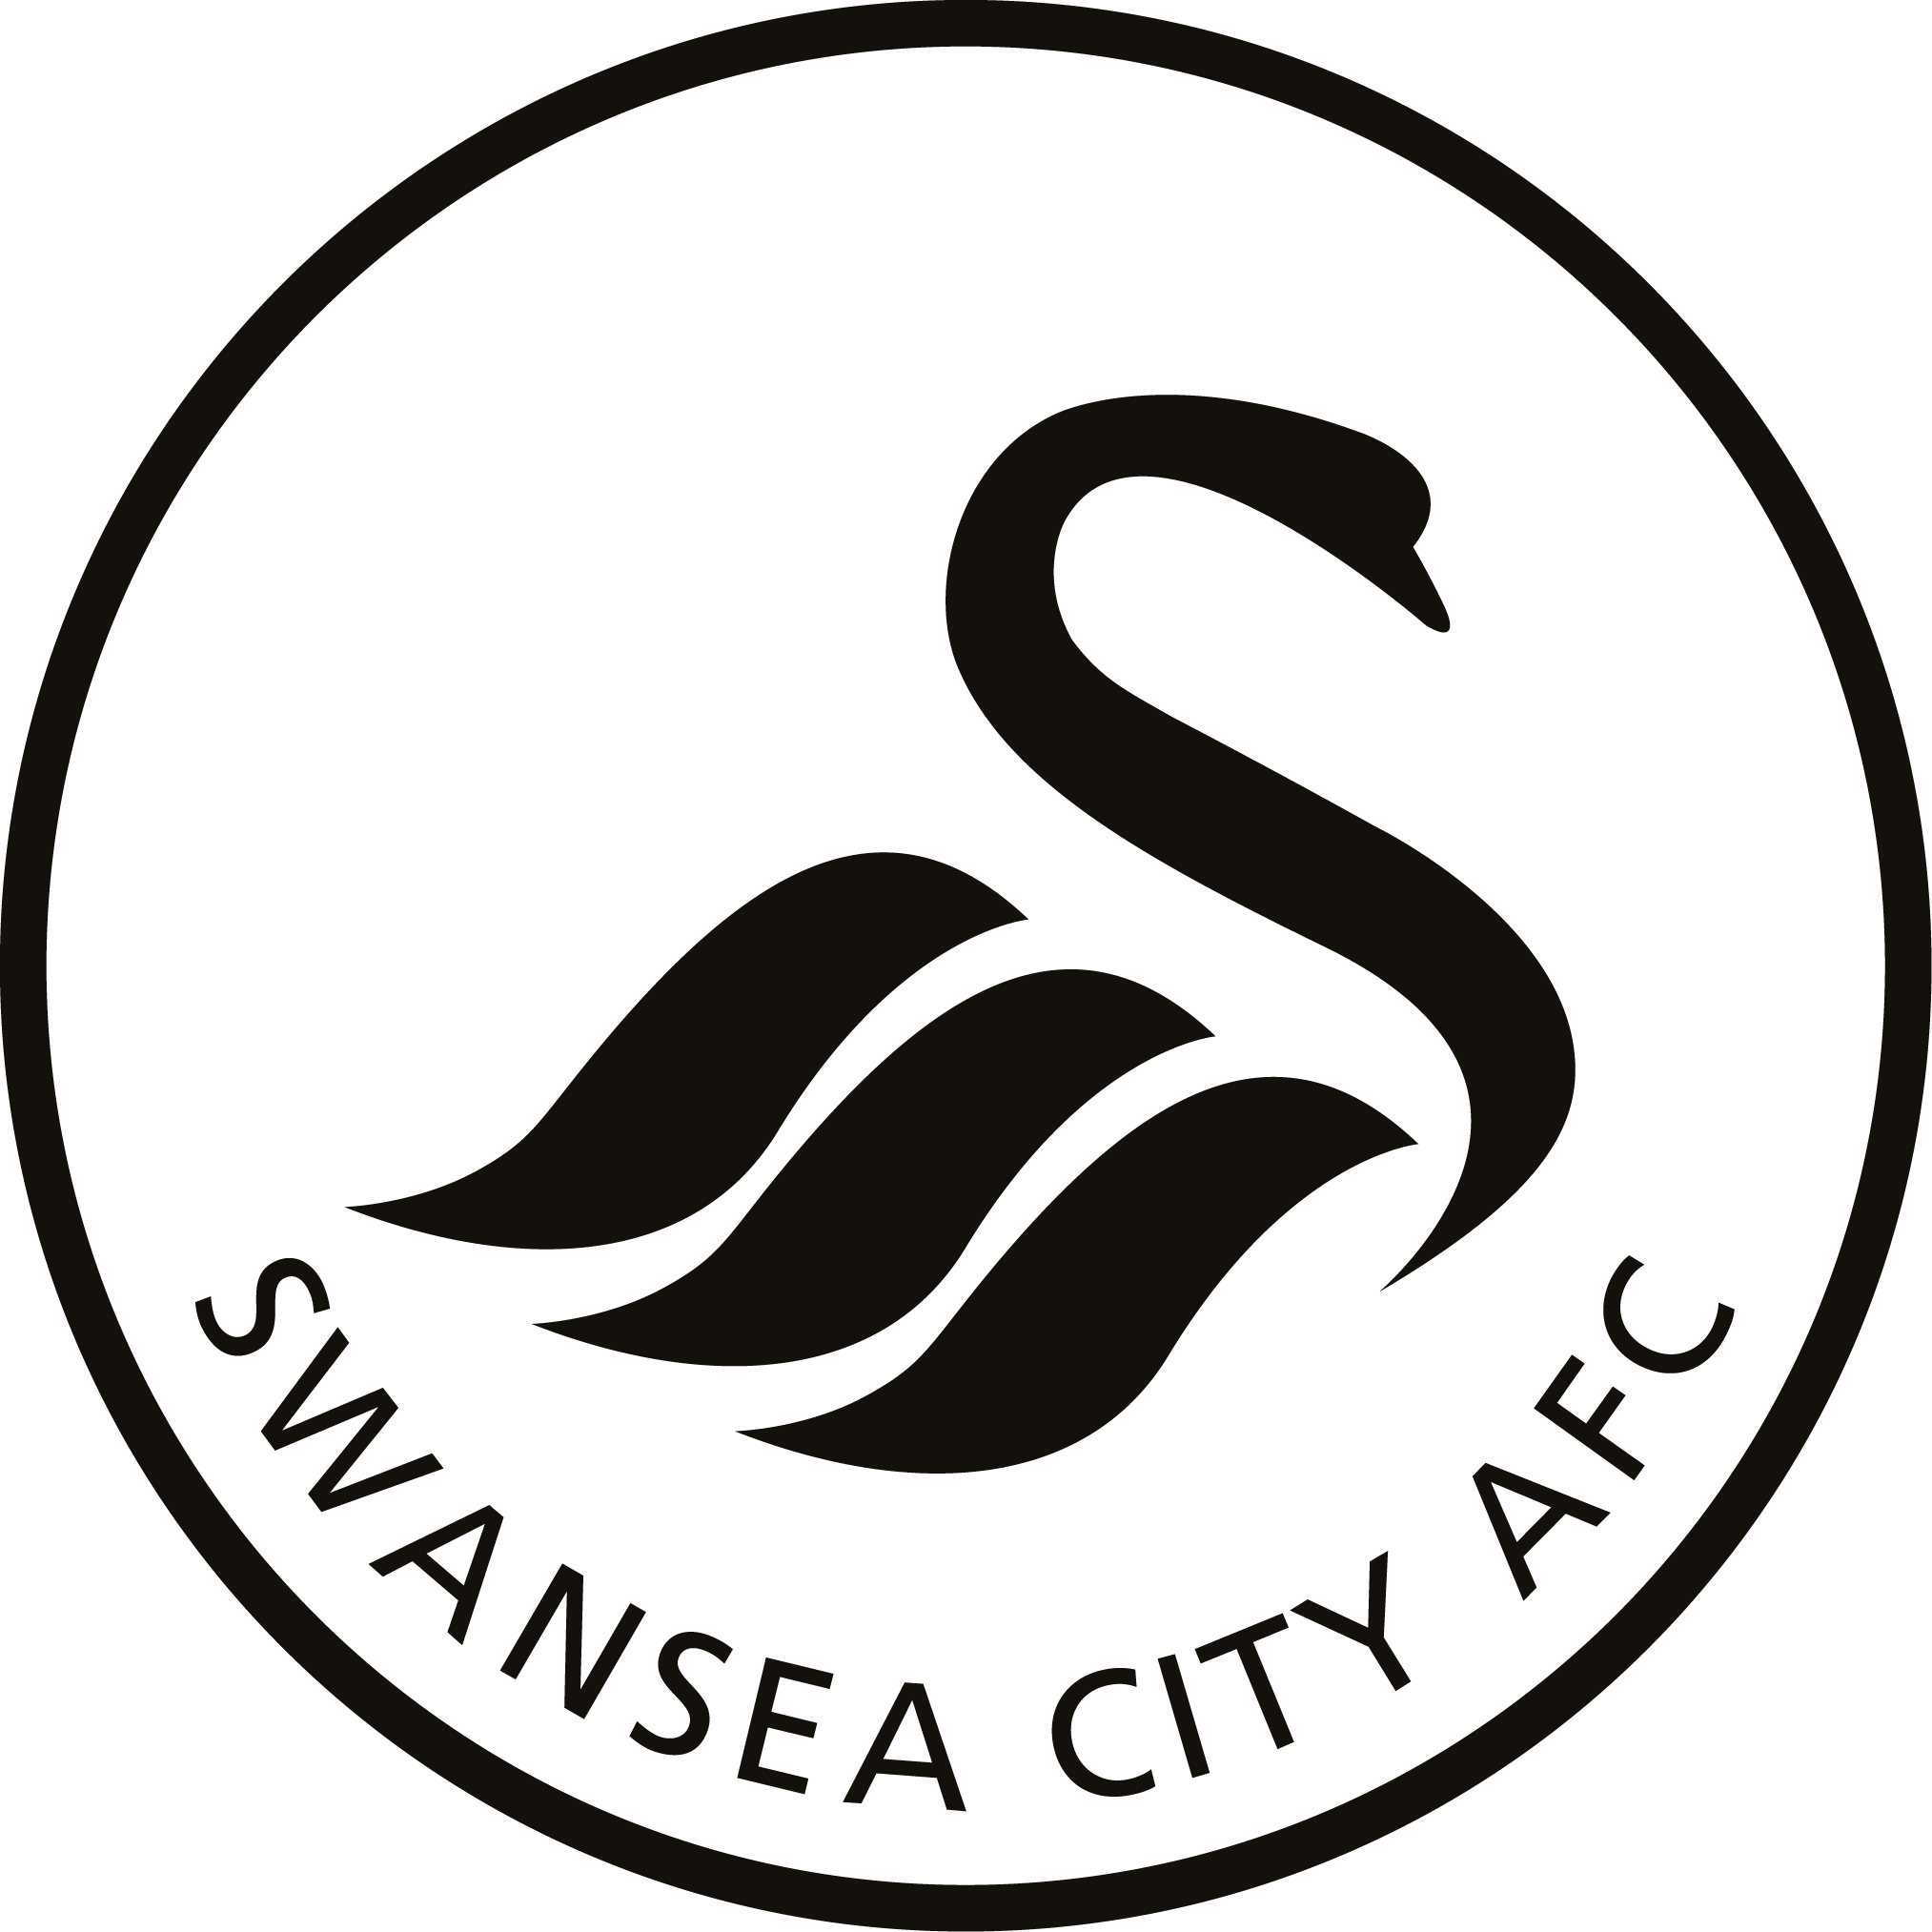 SWANSEA CITY AFC Official player shape pin badge